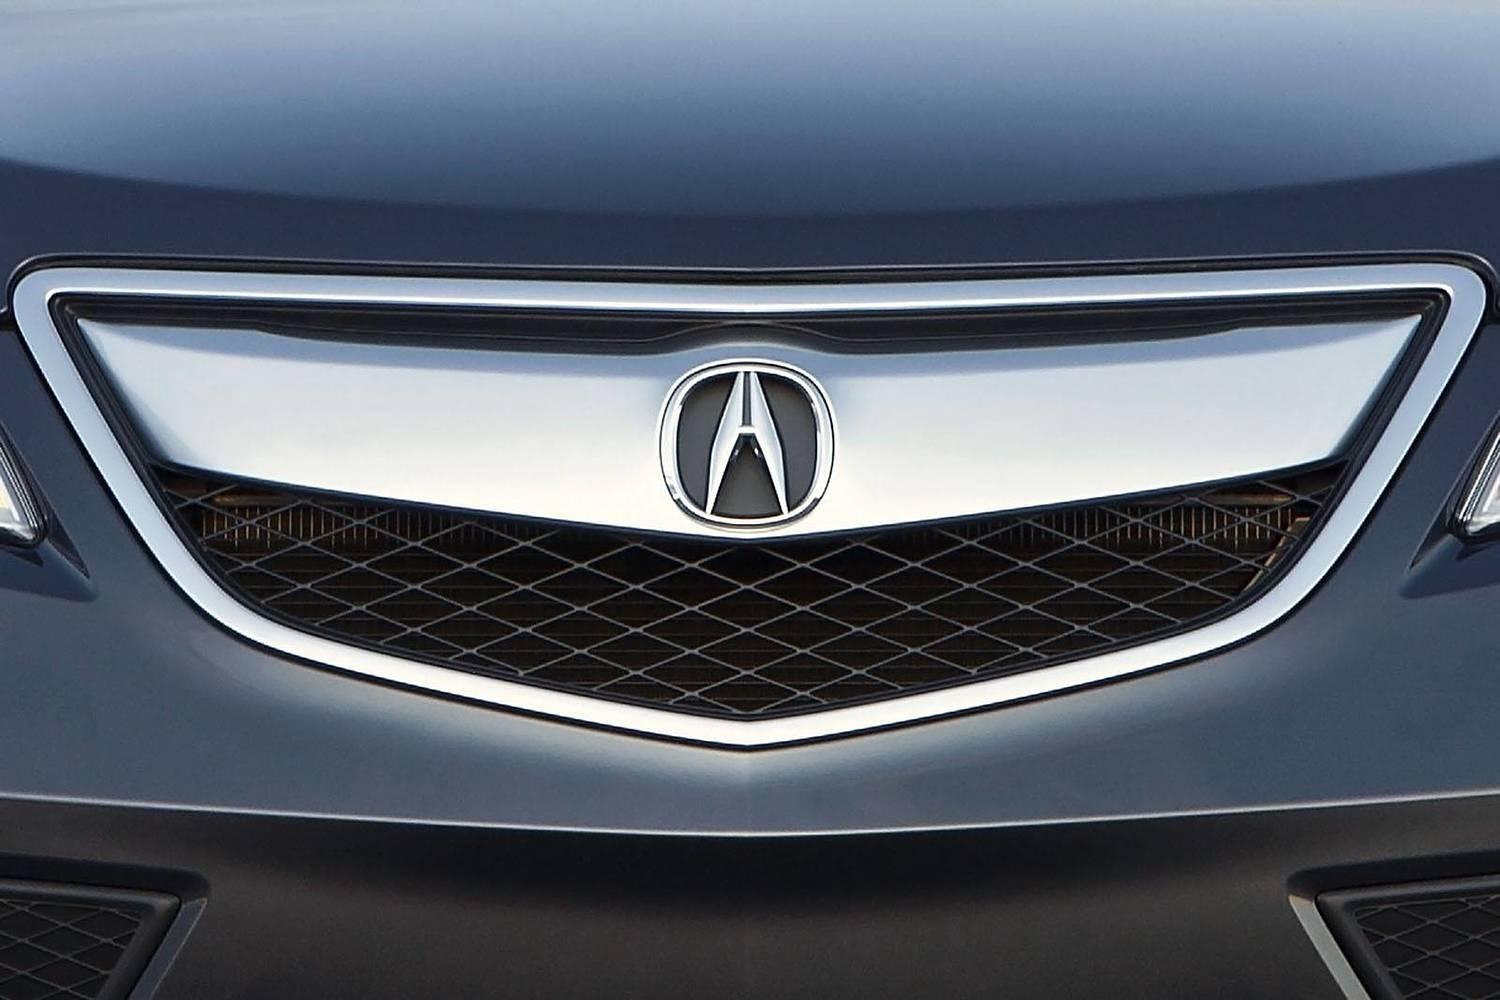 Acura RDX 4dr SUV Front Badge (2014 model year shown)